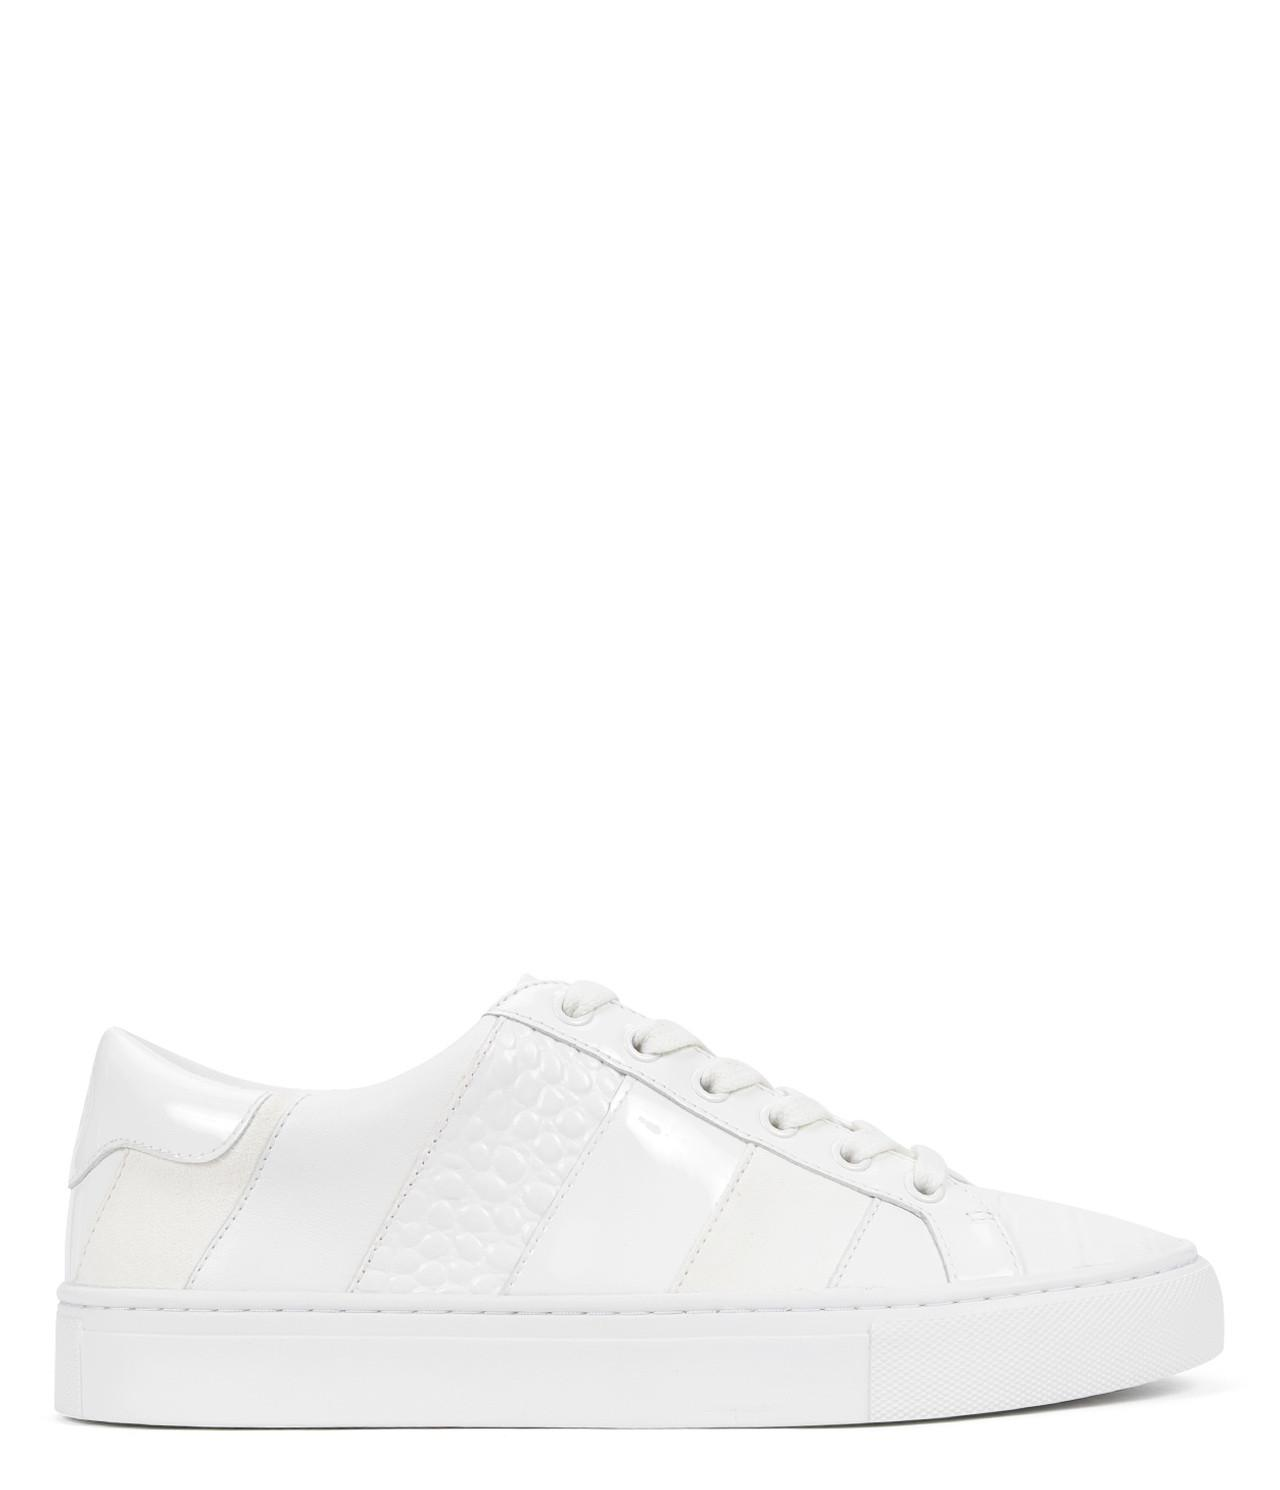 673d4b452e31 Lyst - Tory Burch Ames Sneaker in White